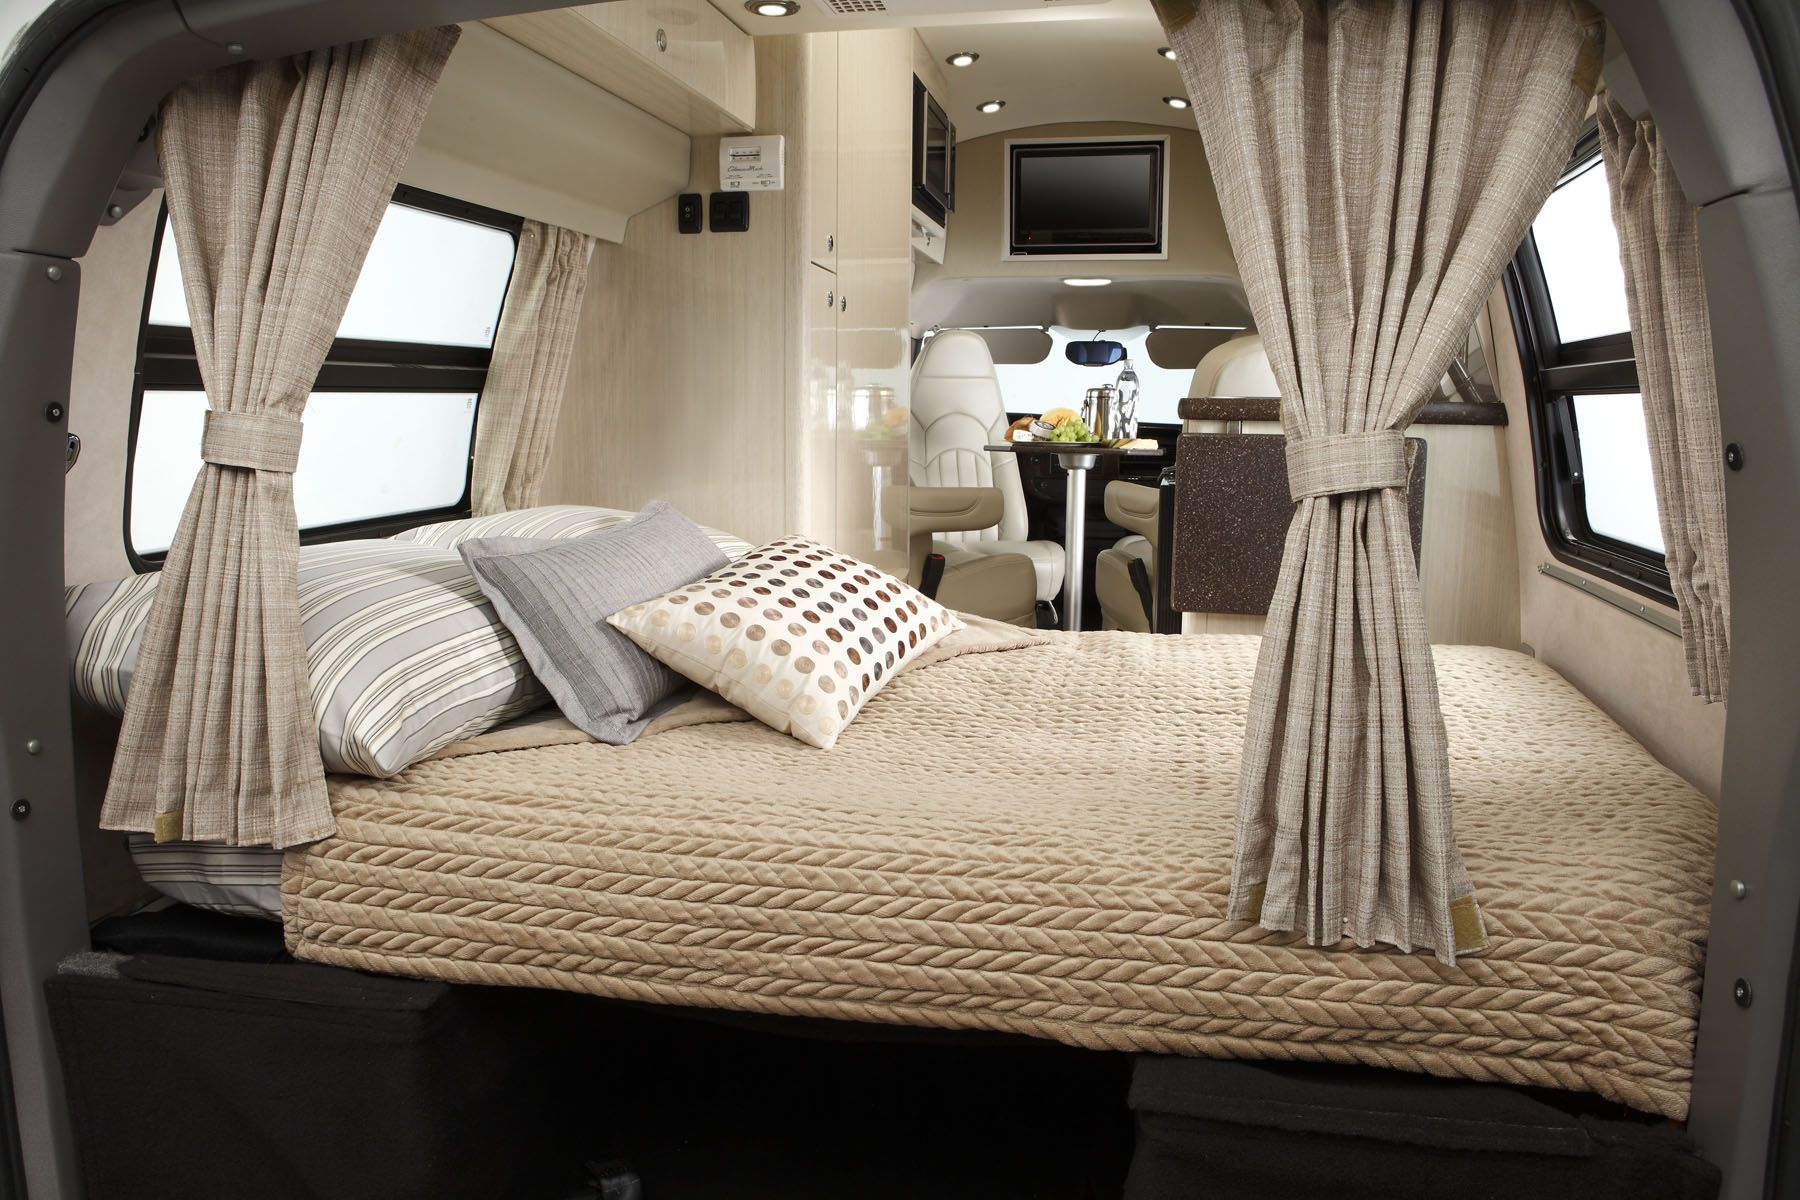 2011 Airstream Avenue Class B Motorhome Bed Rv campers